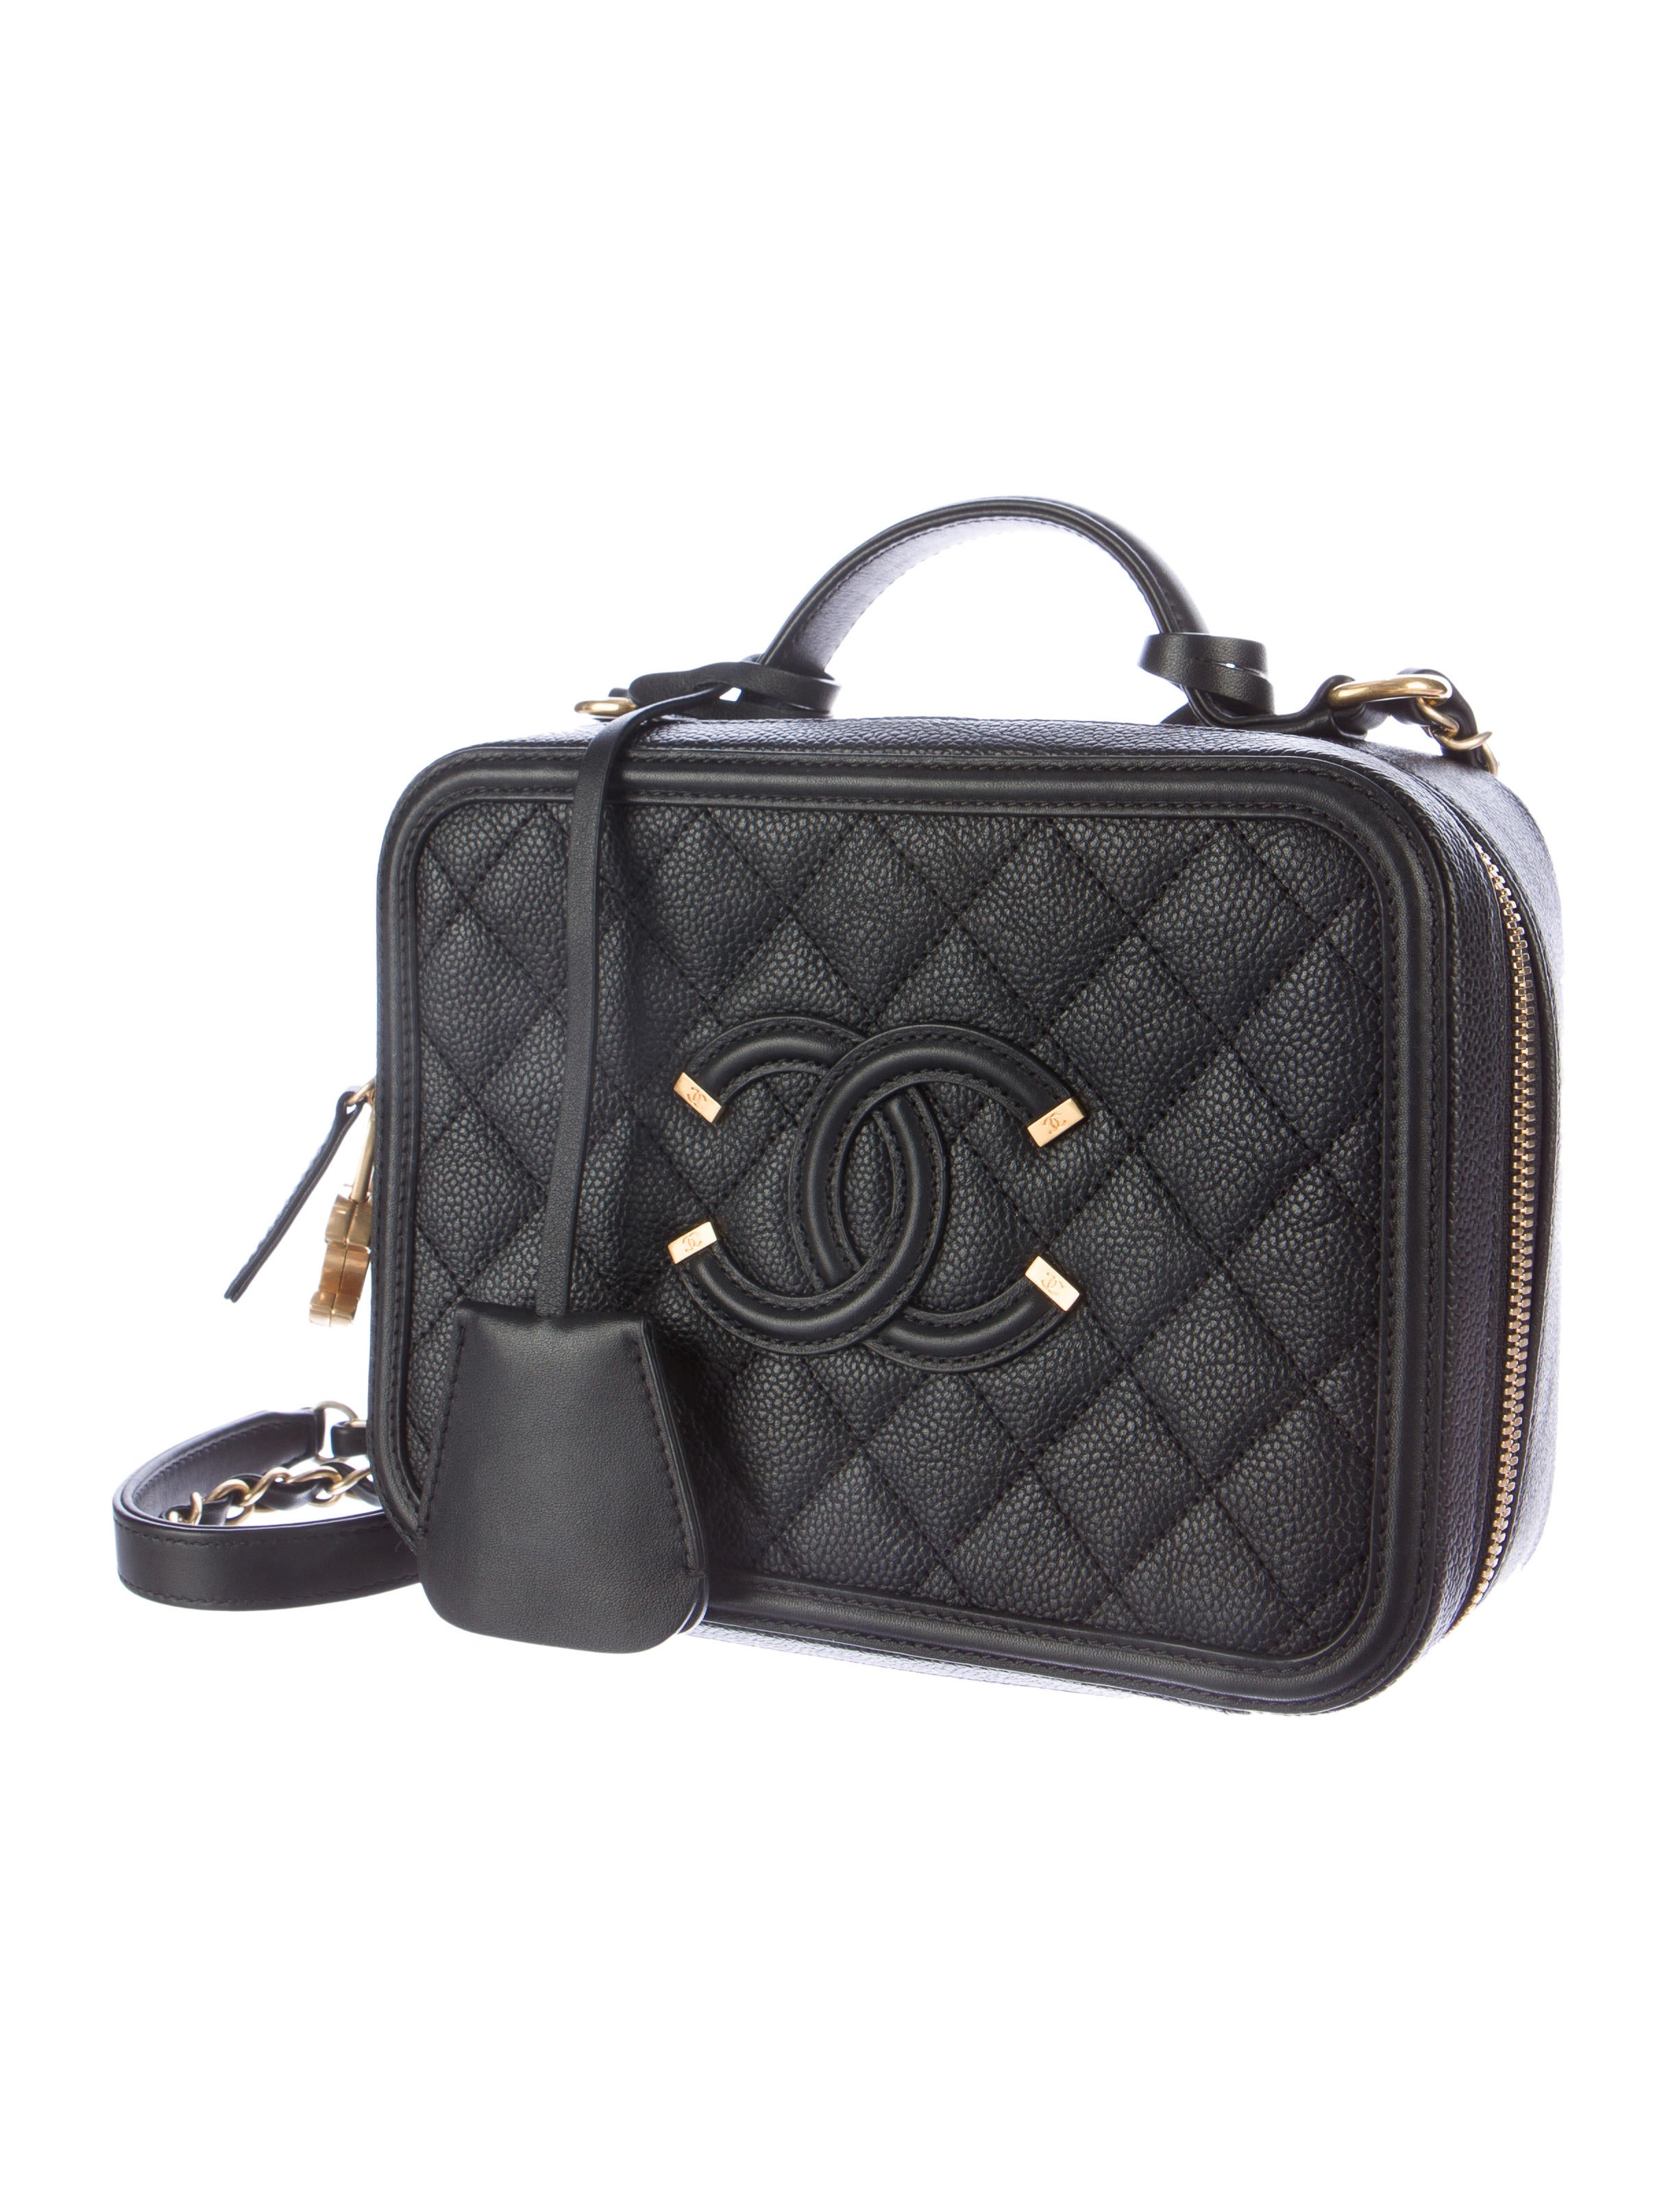 Chanel Cc Filigree Vanity Case Bag Handbags Cha113804